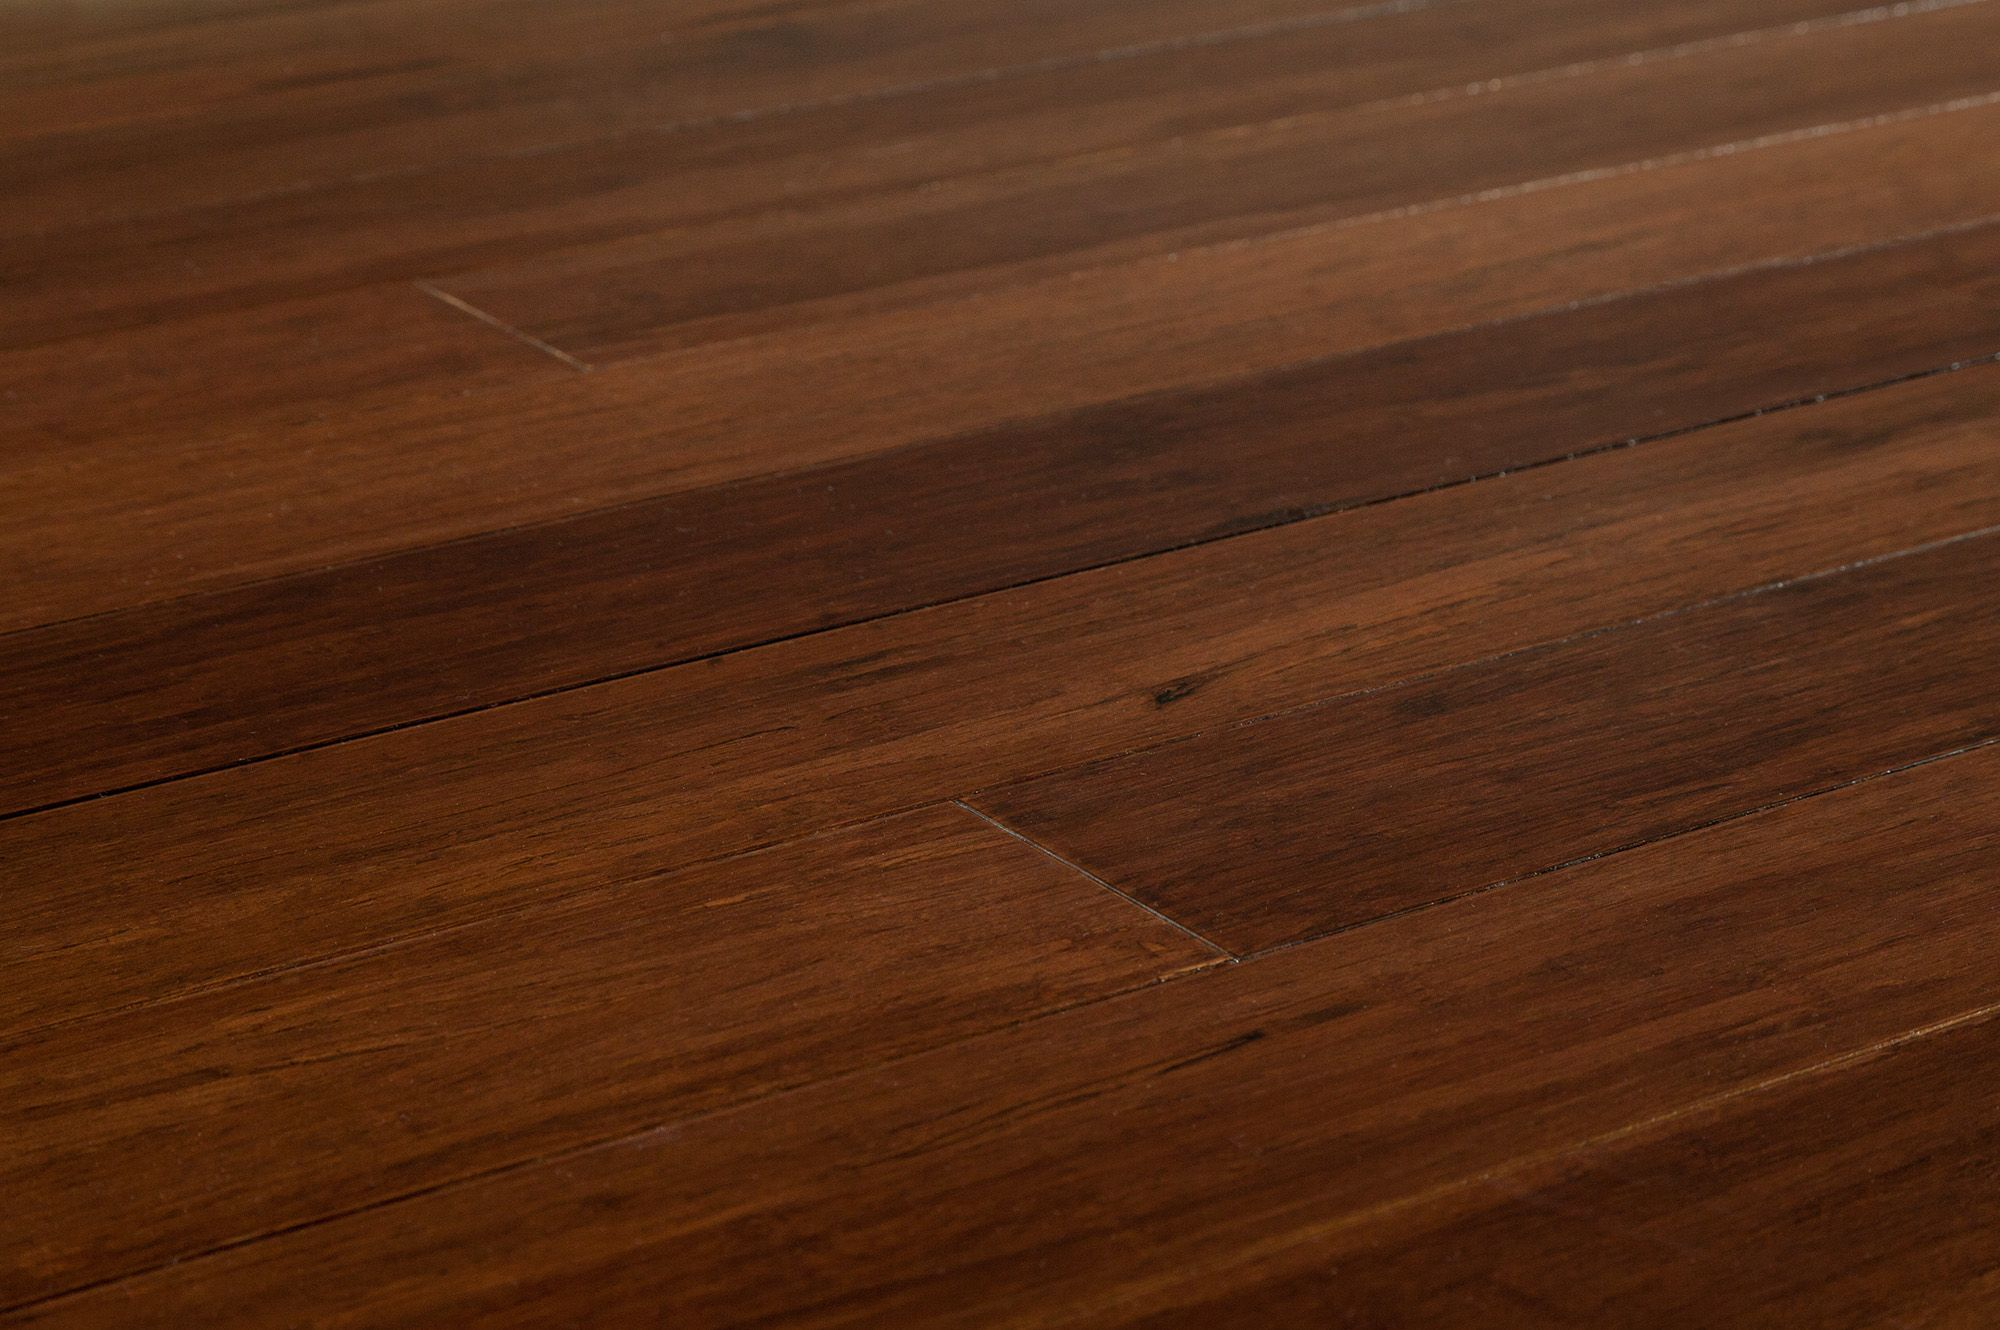 Yanchi Stained T G Solid Strand Woven Bamboo Flooring Eco